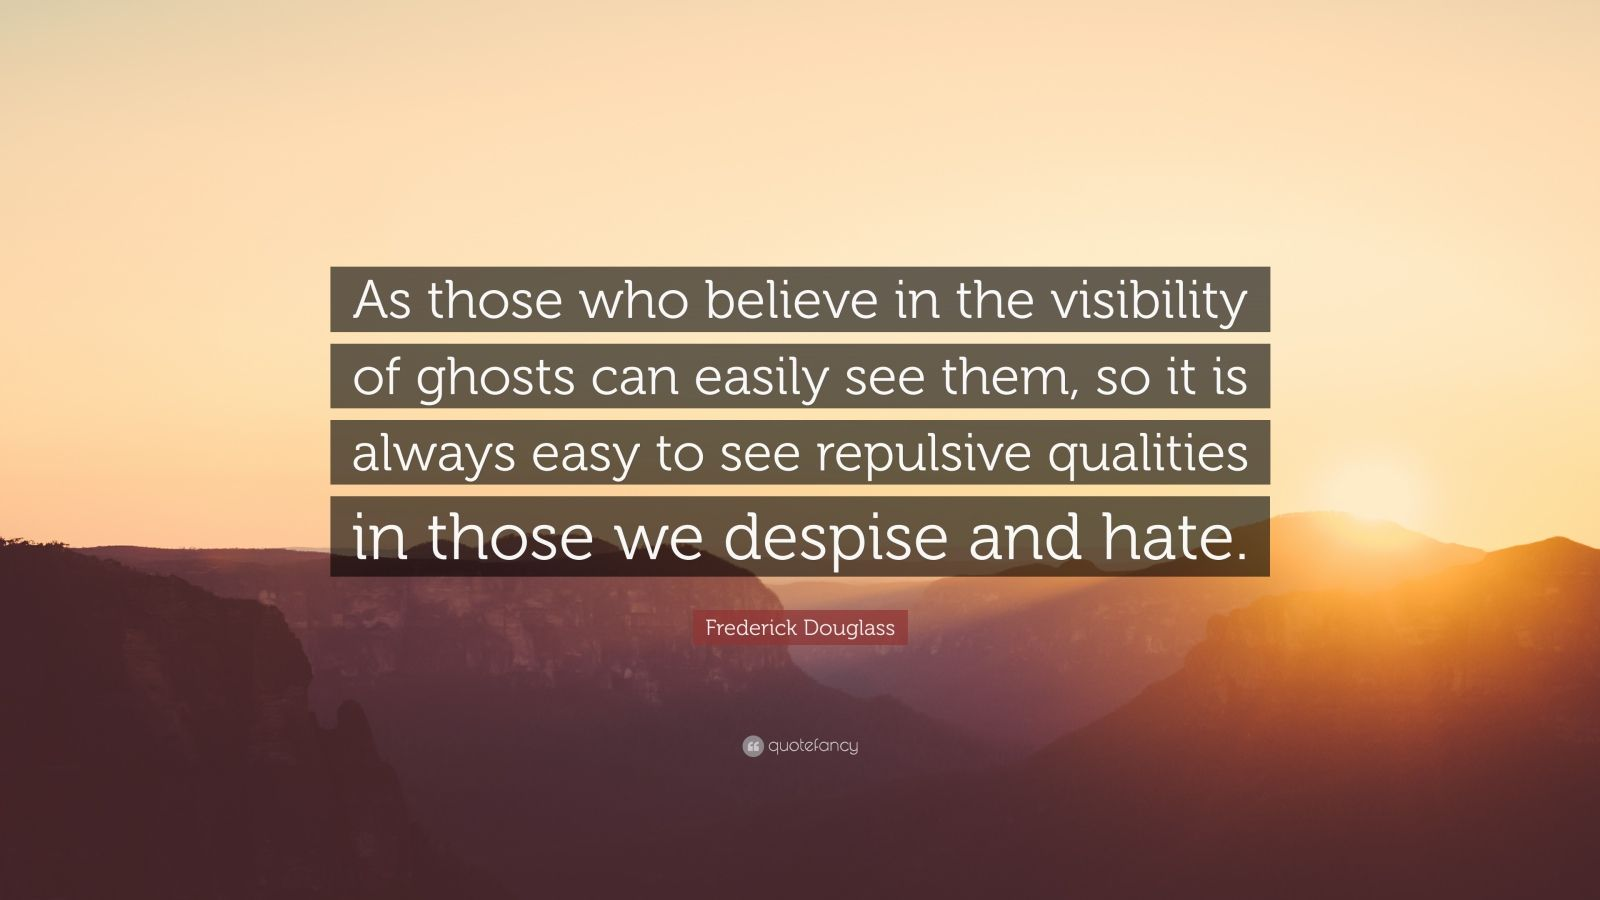 """Frederick Douglass Quote: """"As those who believe in the visibility of ghosts can easily see them, so it is always easy to see repulsive qualities in those we despise and hate."""""""